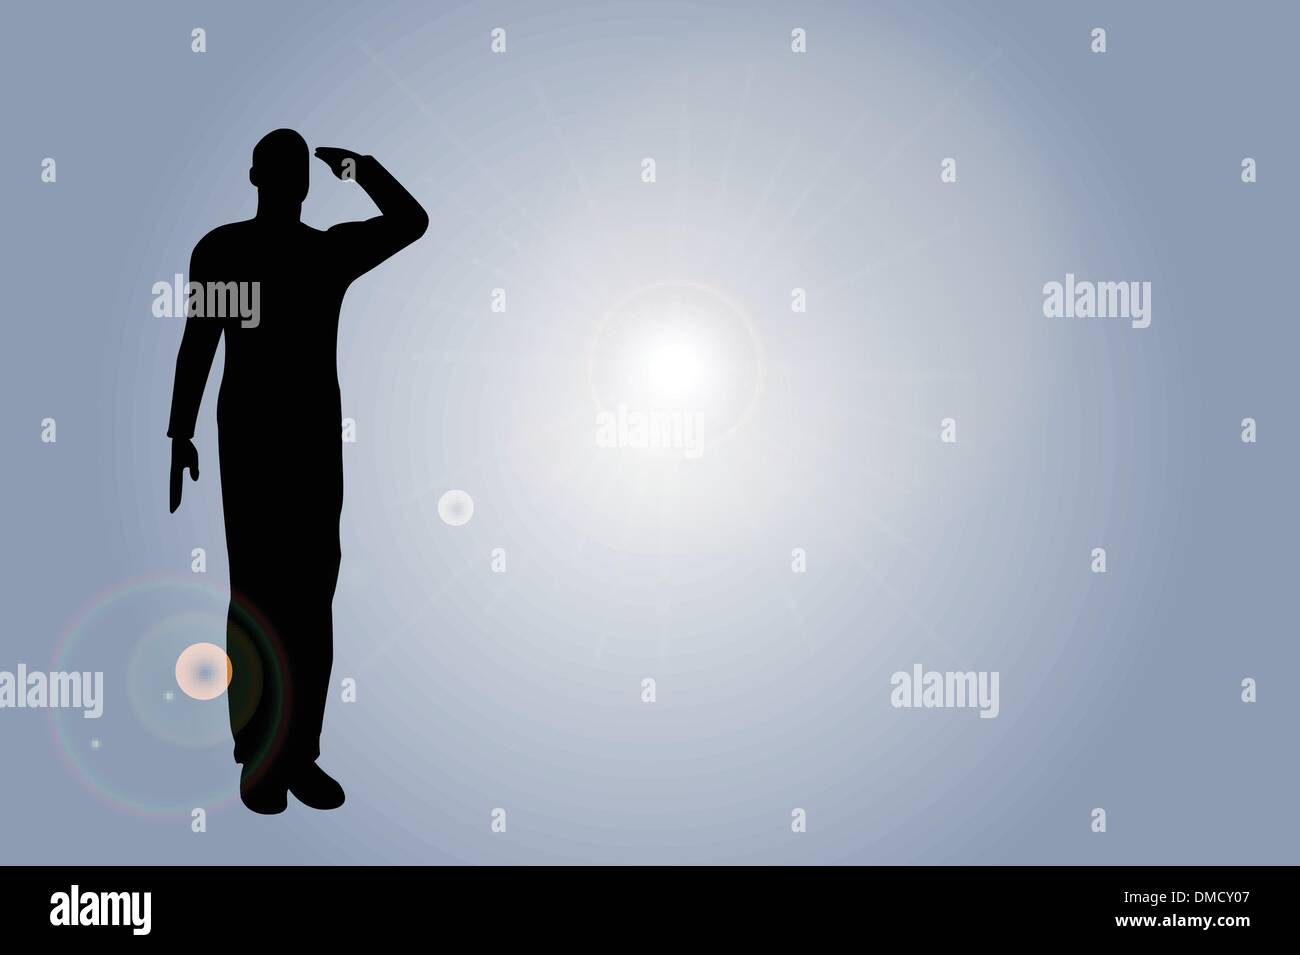 silhouette of an army soldier saluting